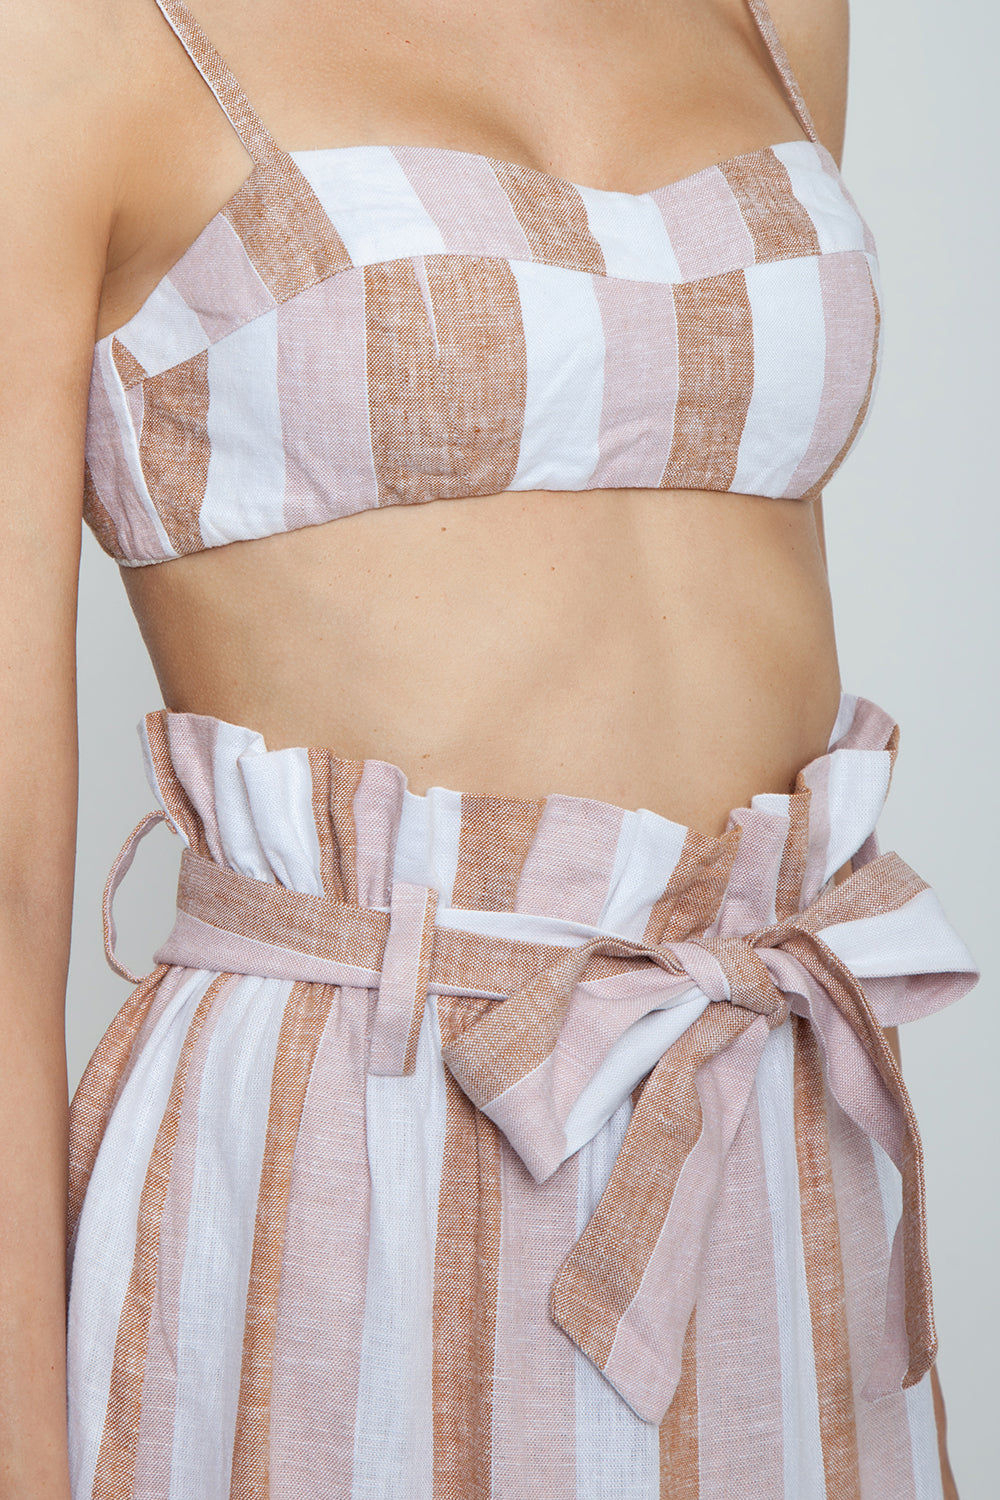 ADRIANA DEGREAS Striped Clochard Shorts - Porto Rose Stripe Print Shorts | Porto Rose Stripe Print| Adriana Degreas Striped Clochard Shorts - Porto Rose Stripe Print. Features:  Adjustable waist tie Relaxed fit Side pockets Main: 100% Cotton Detail View